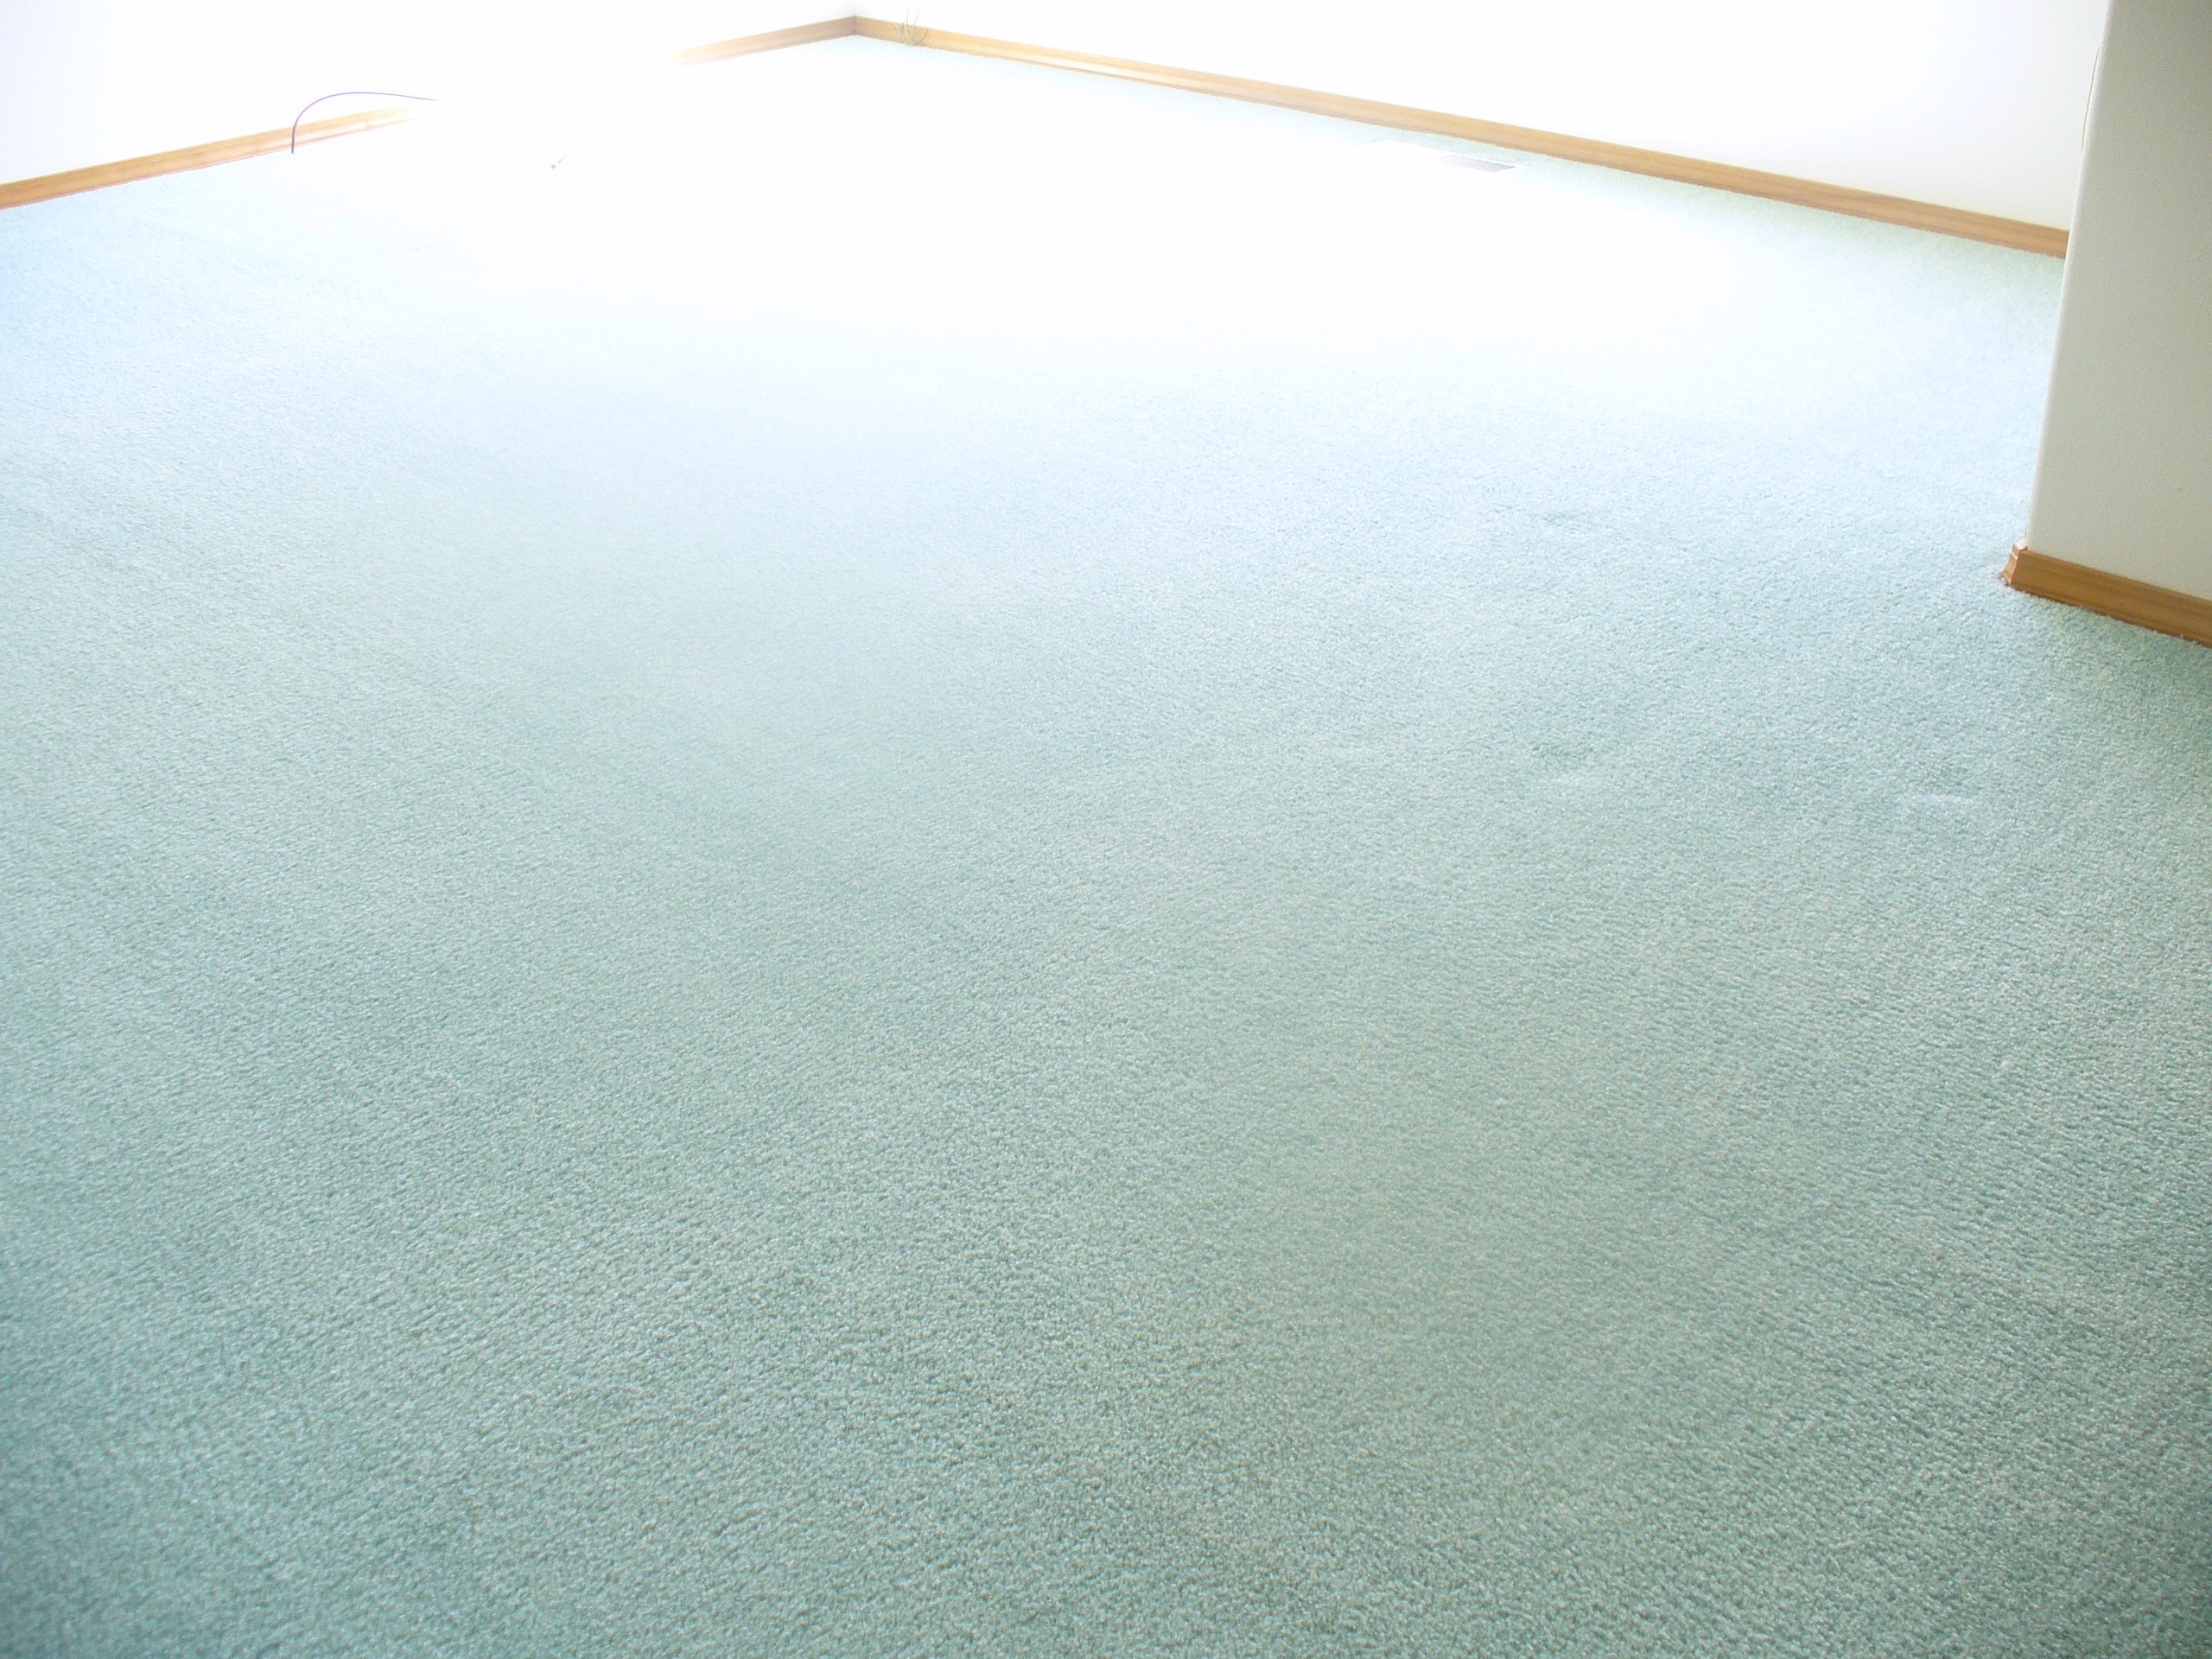 Carpet cleaning pasco wa floor matttroy for Flooring kennewick